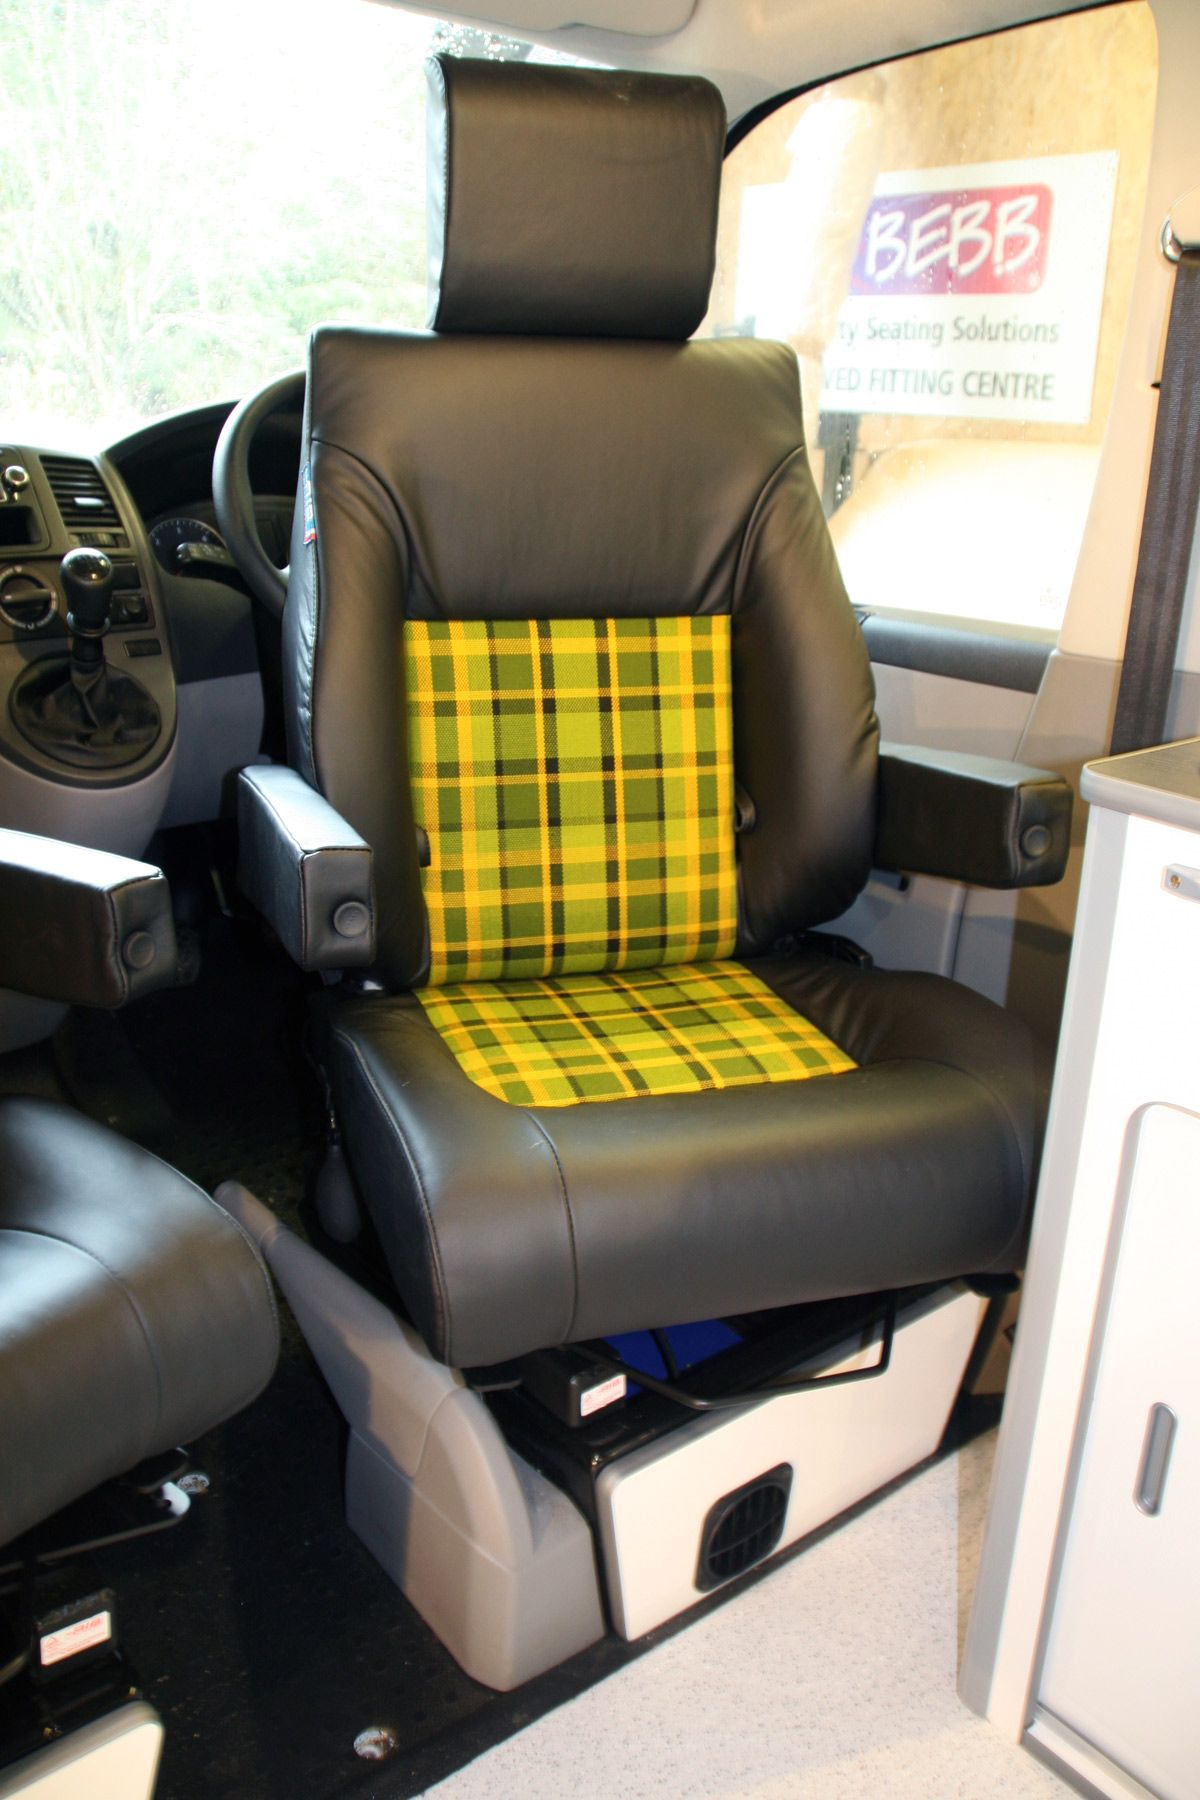 Future Classic - Our conversions - VW T5 Camper Conversions and Custom Vans by UBERBUS